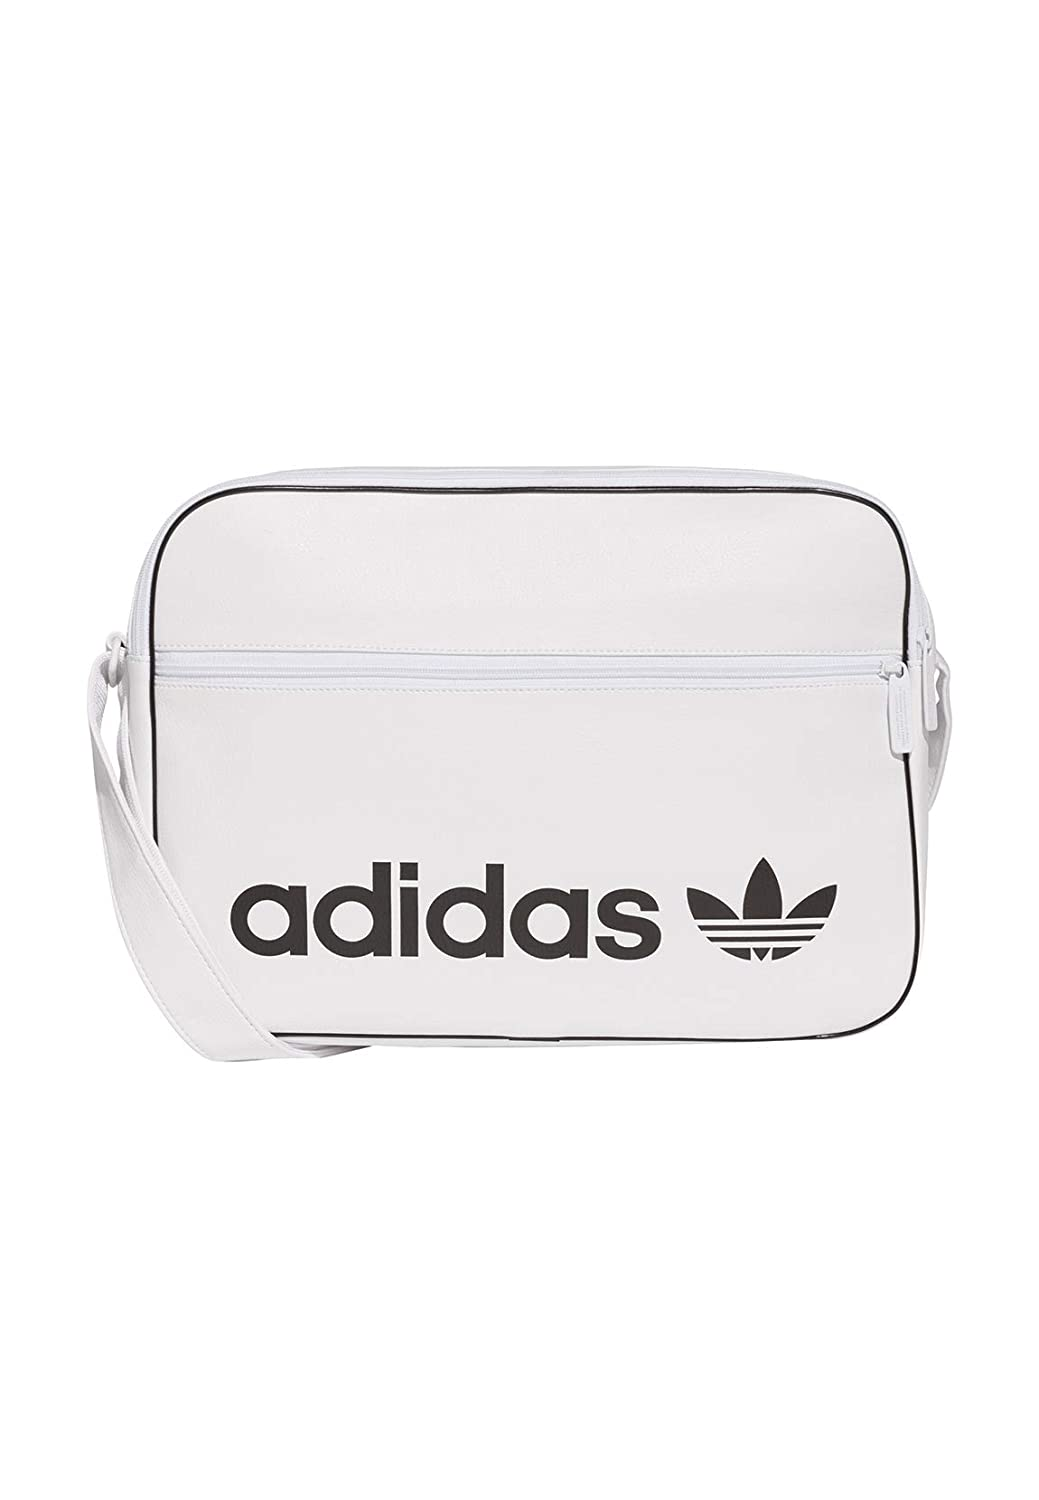 adidas Airliner Vintage Messenger Bag Black 12 x 29 x 39 cm DH1002